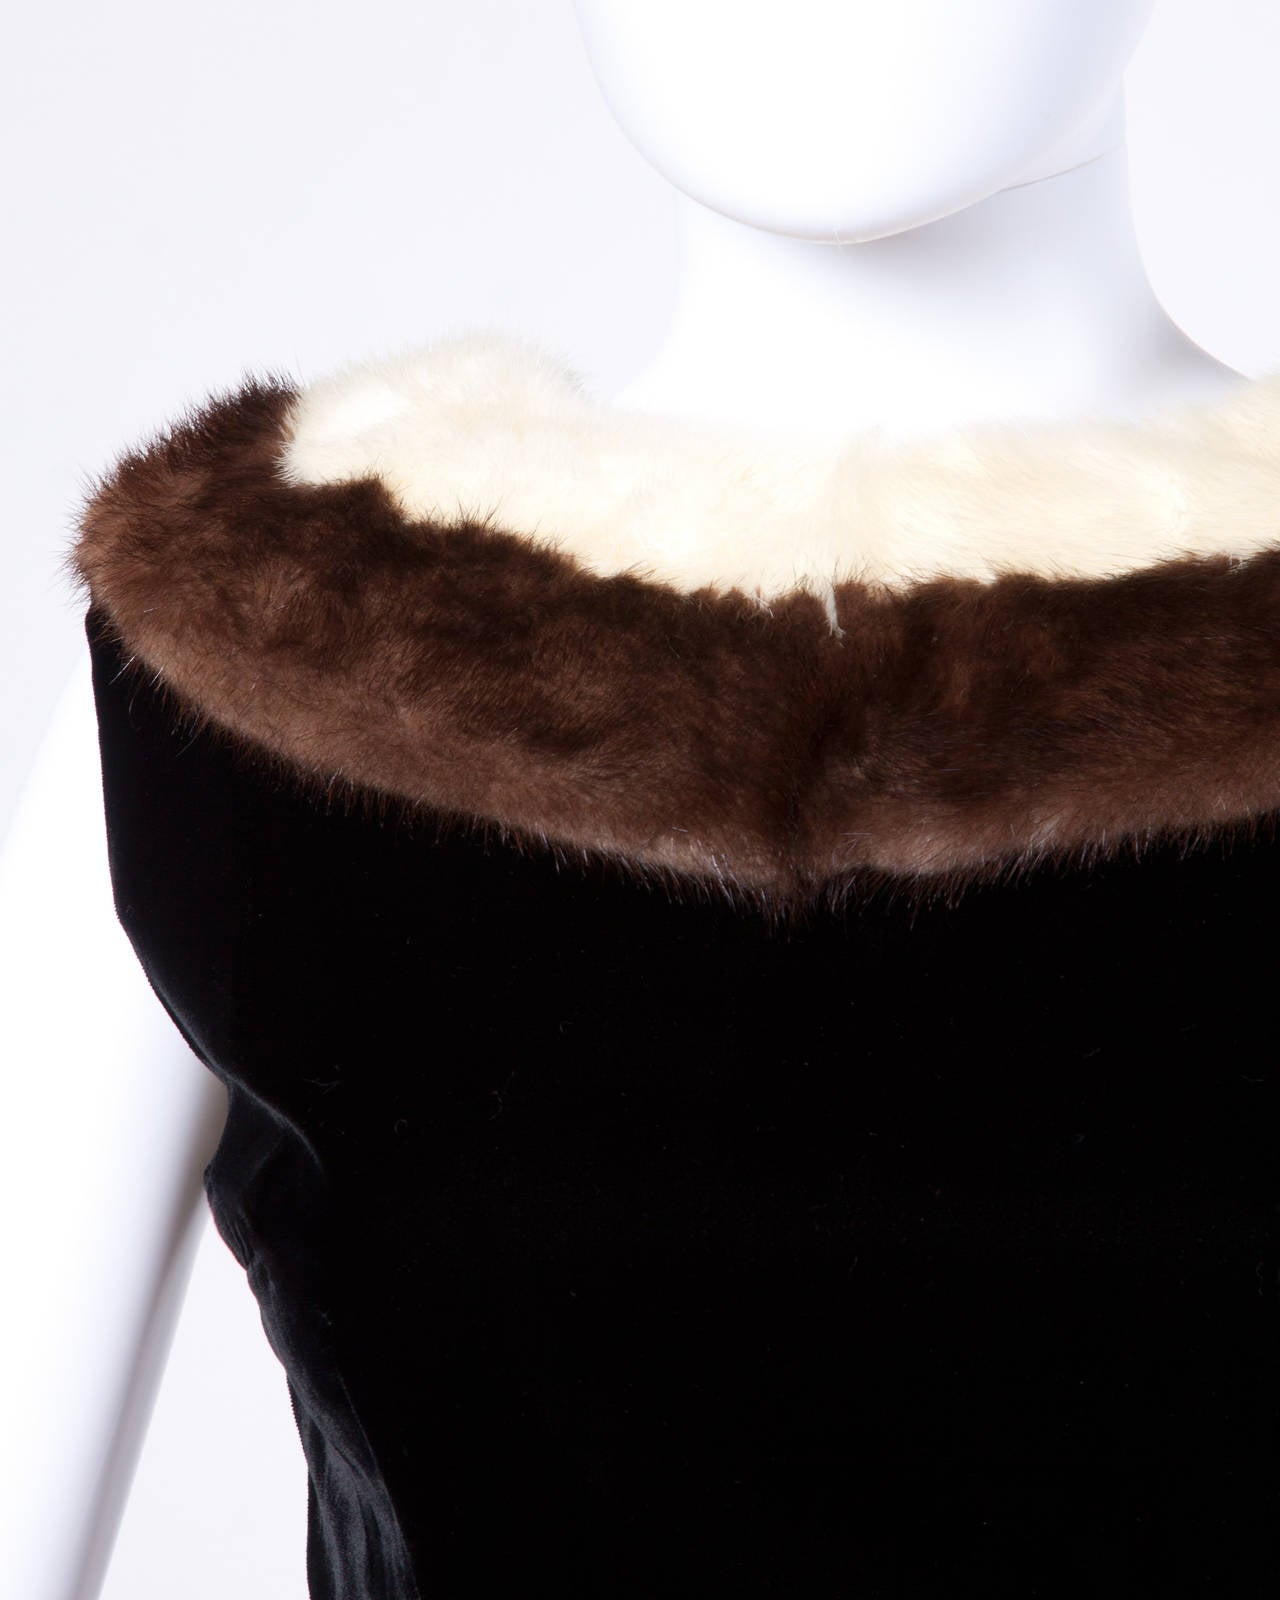 Chic black velvet cocktail dress with a platinum and brown mink fur collar.  Details:  Fully Lined Back Metal Zip Hook and Button Closure Estimated Size: S-M Color: Black/ Brown/ White Fabric: Velvet/ Genuine Mink